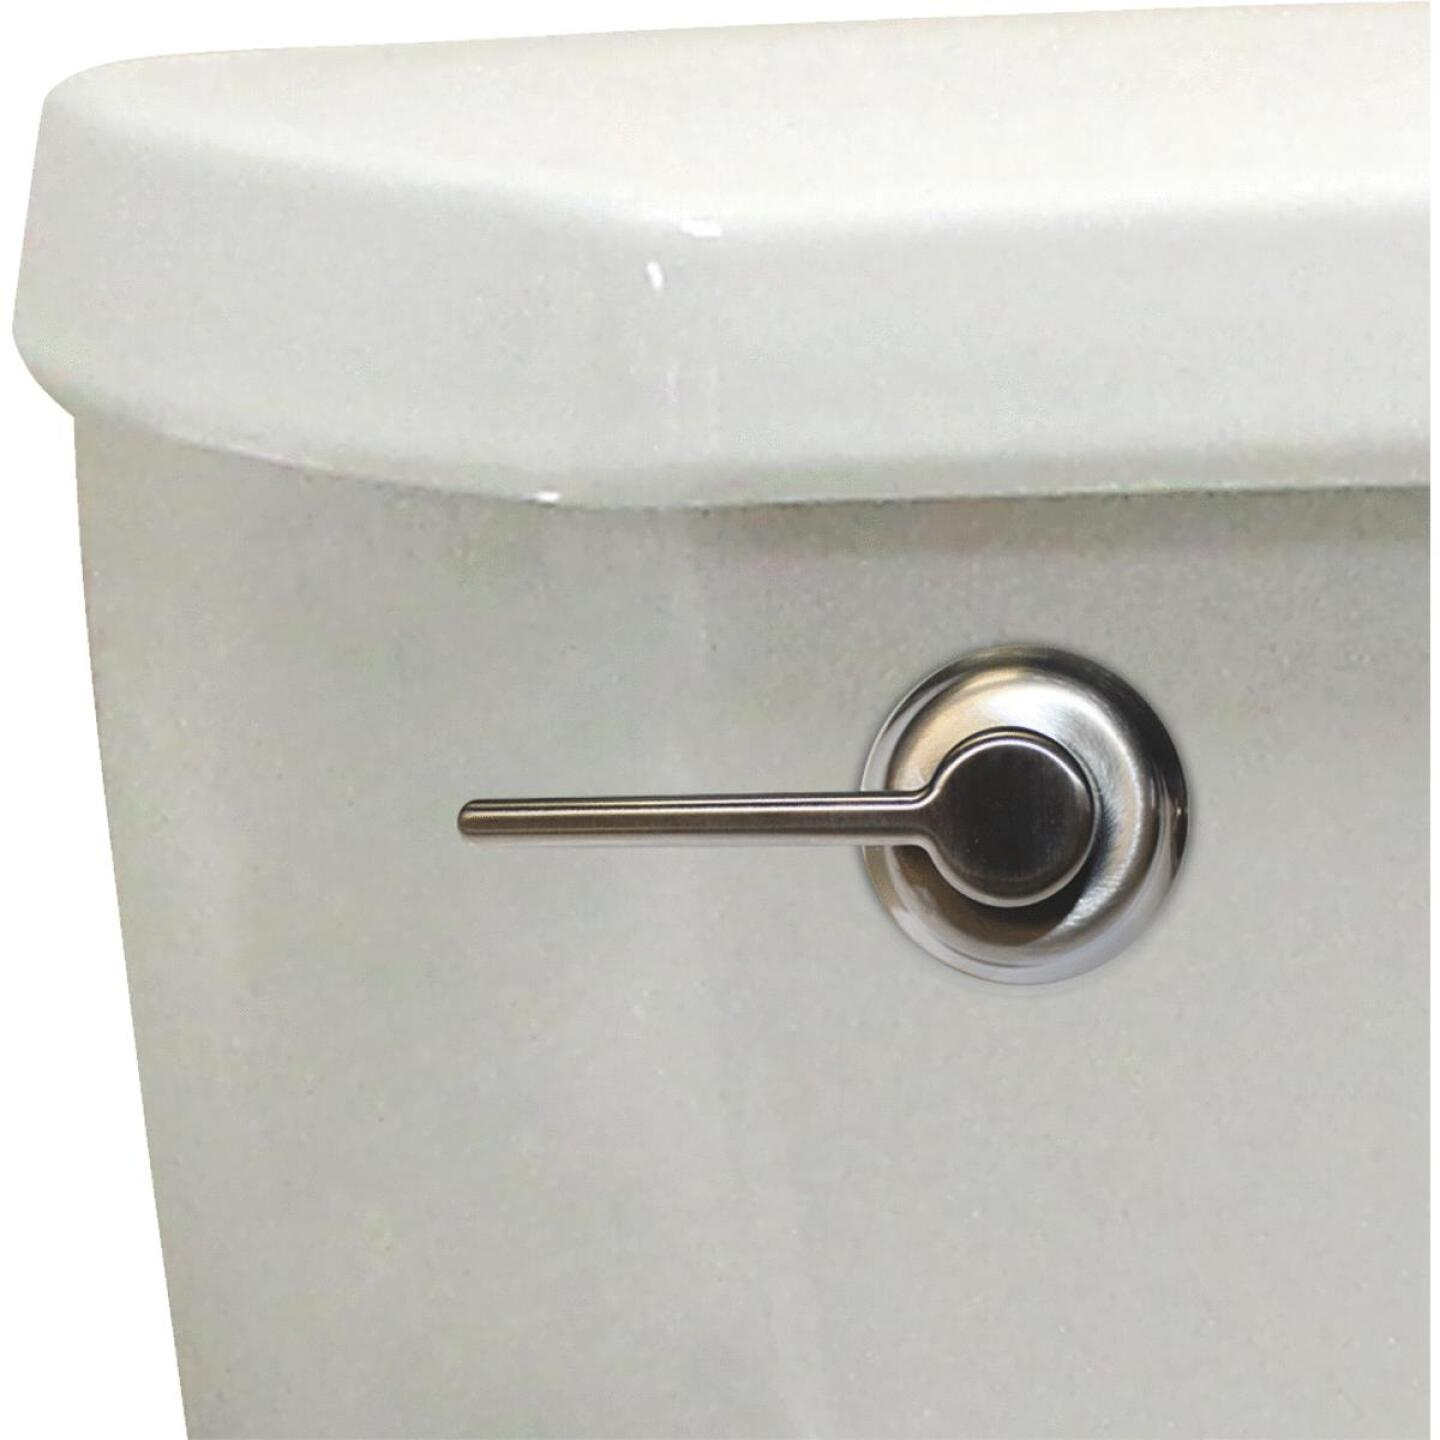 Korky StrongARM Universal Brushed Nickel Tank Lever with Classic Style Handle Image 3